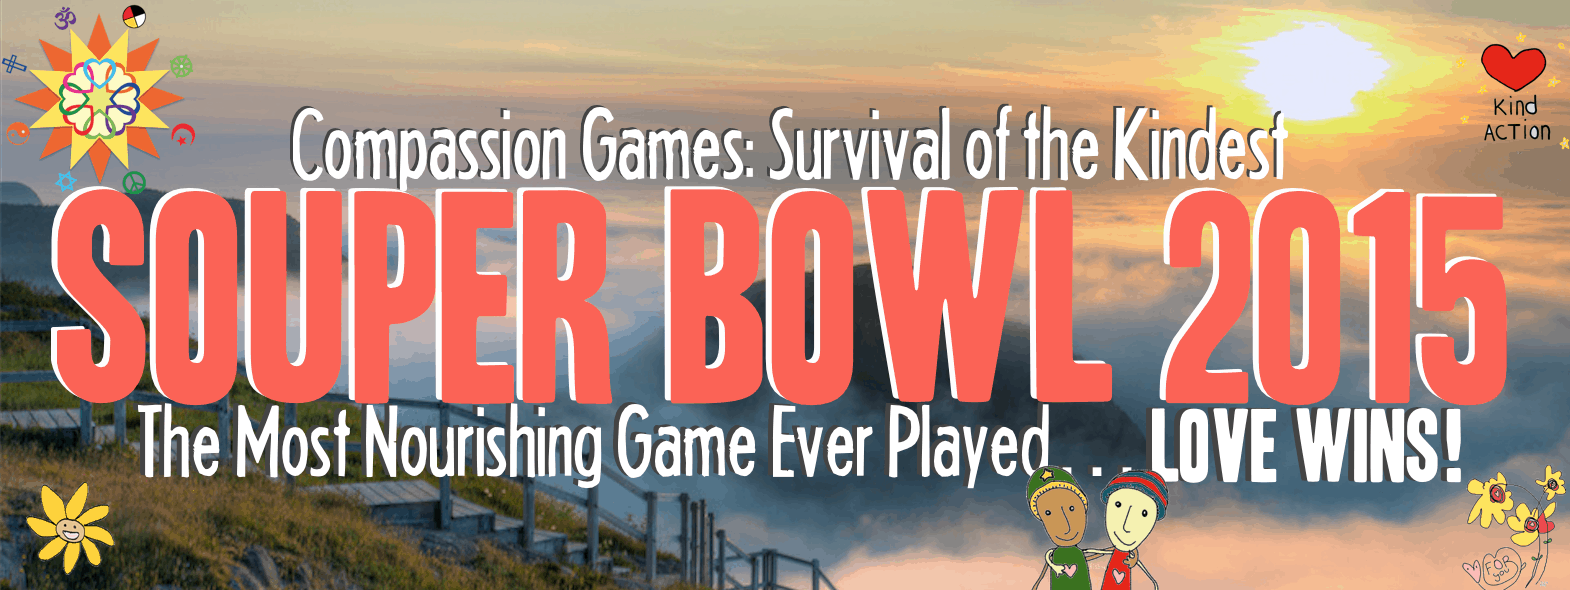 Compassion Games Souper Bowl - 2015